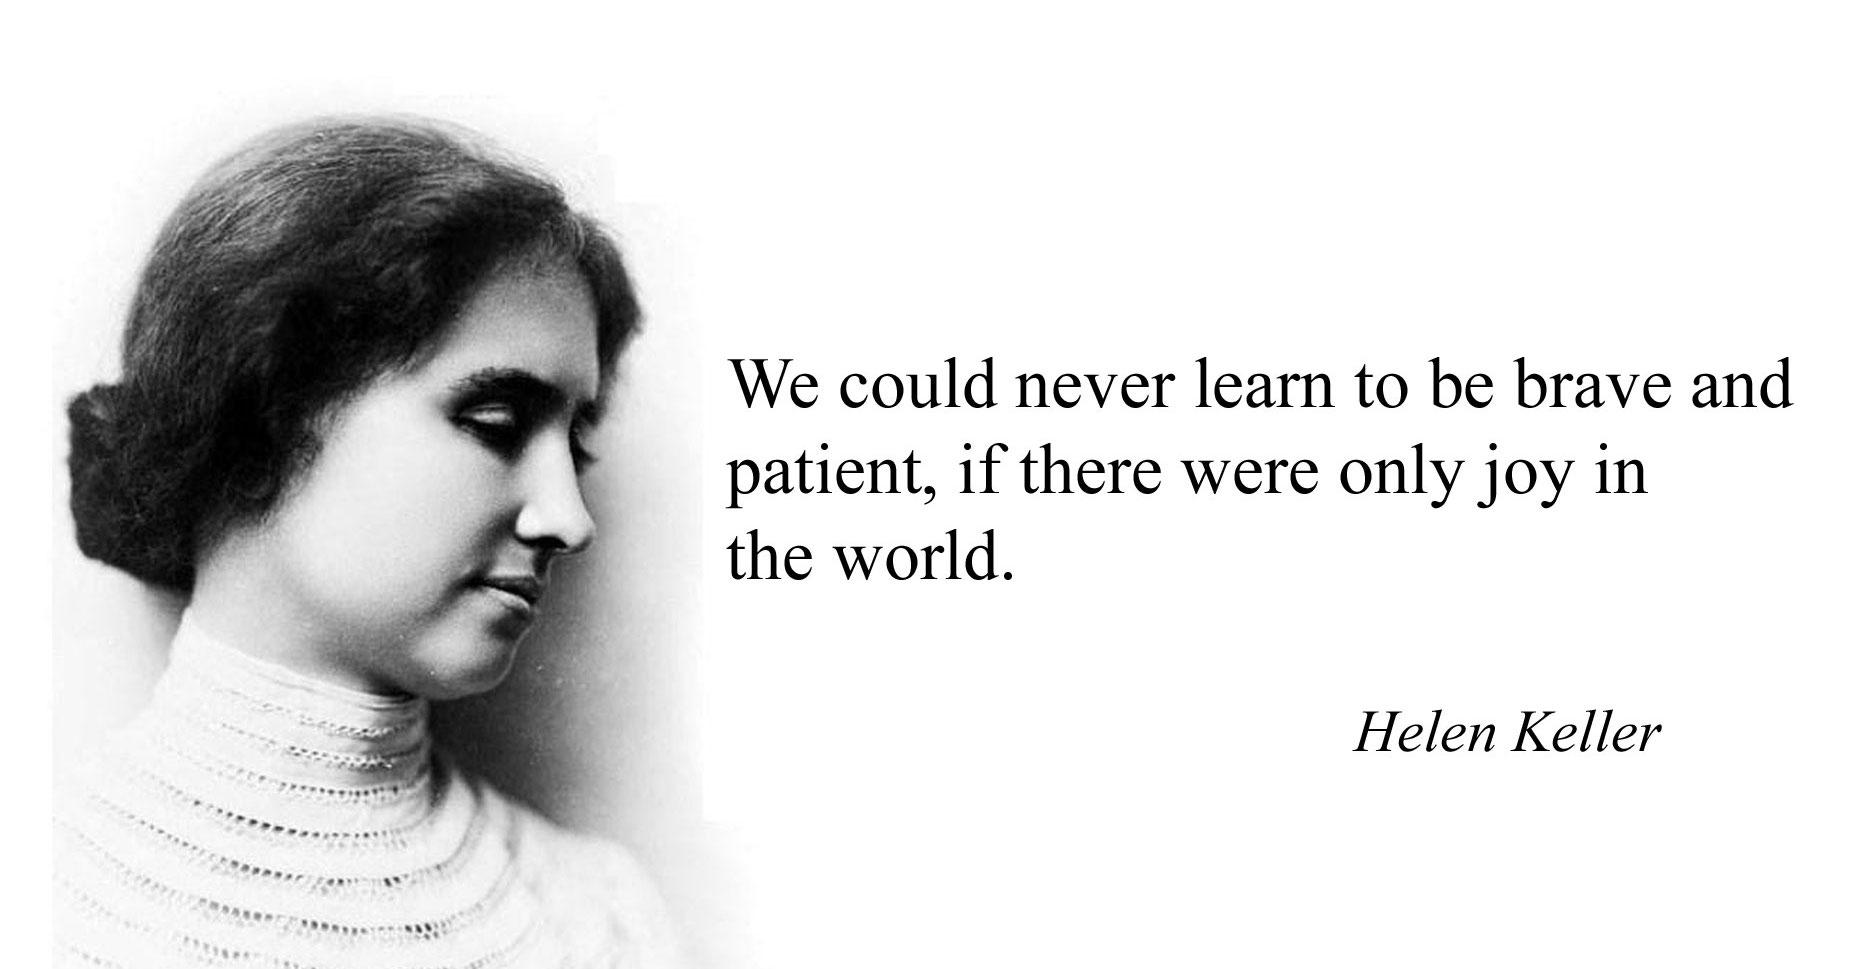 """We could never learn to be brave and patient if there were only joy in the world."" – Helen Keller [1858X969]"